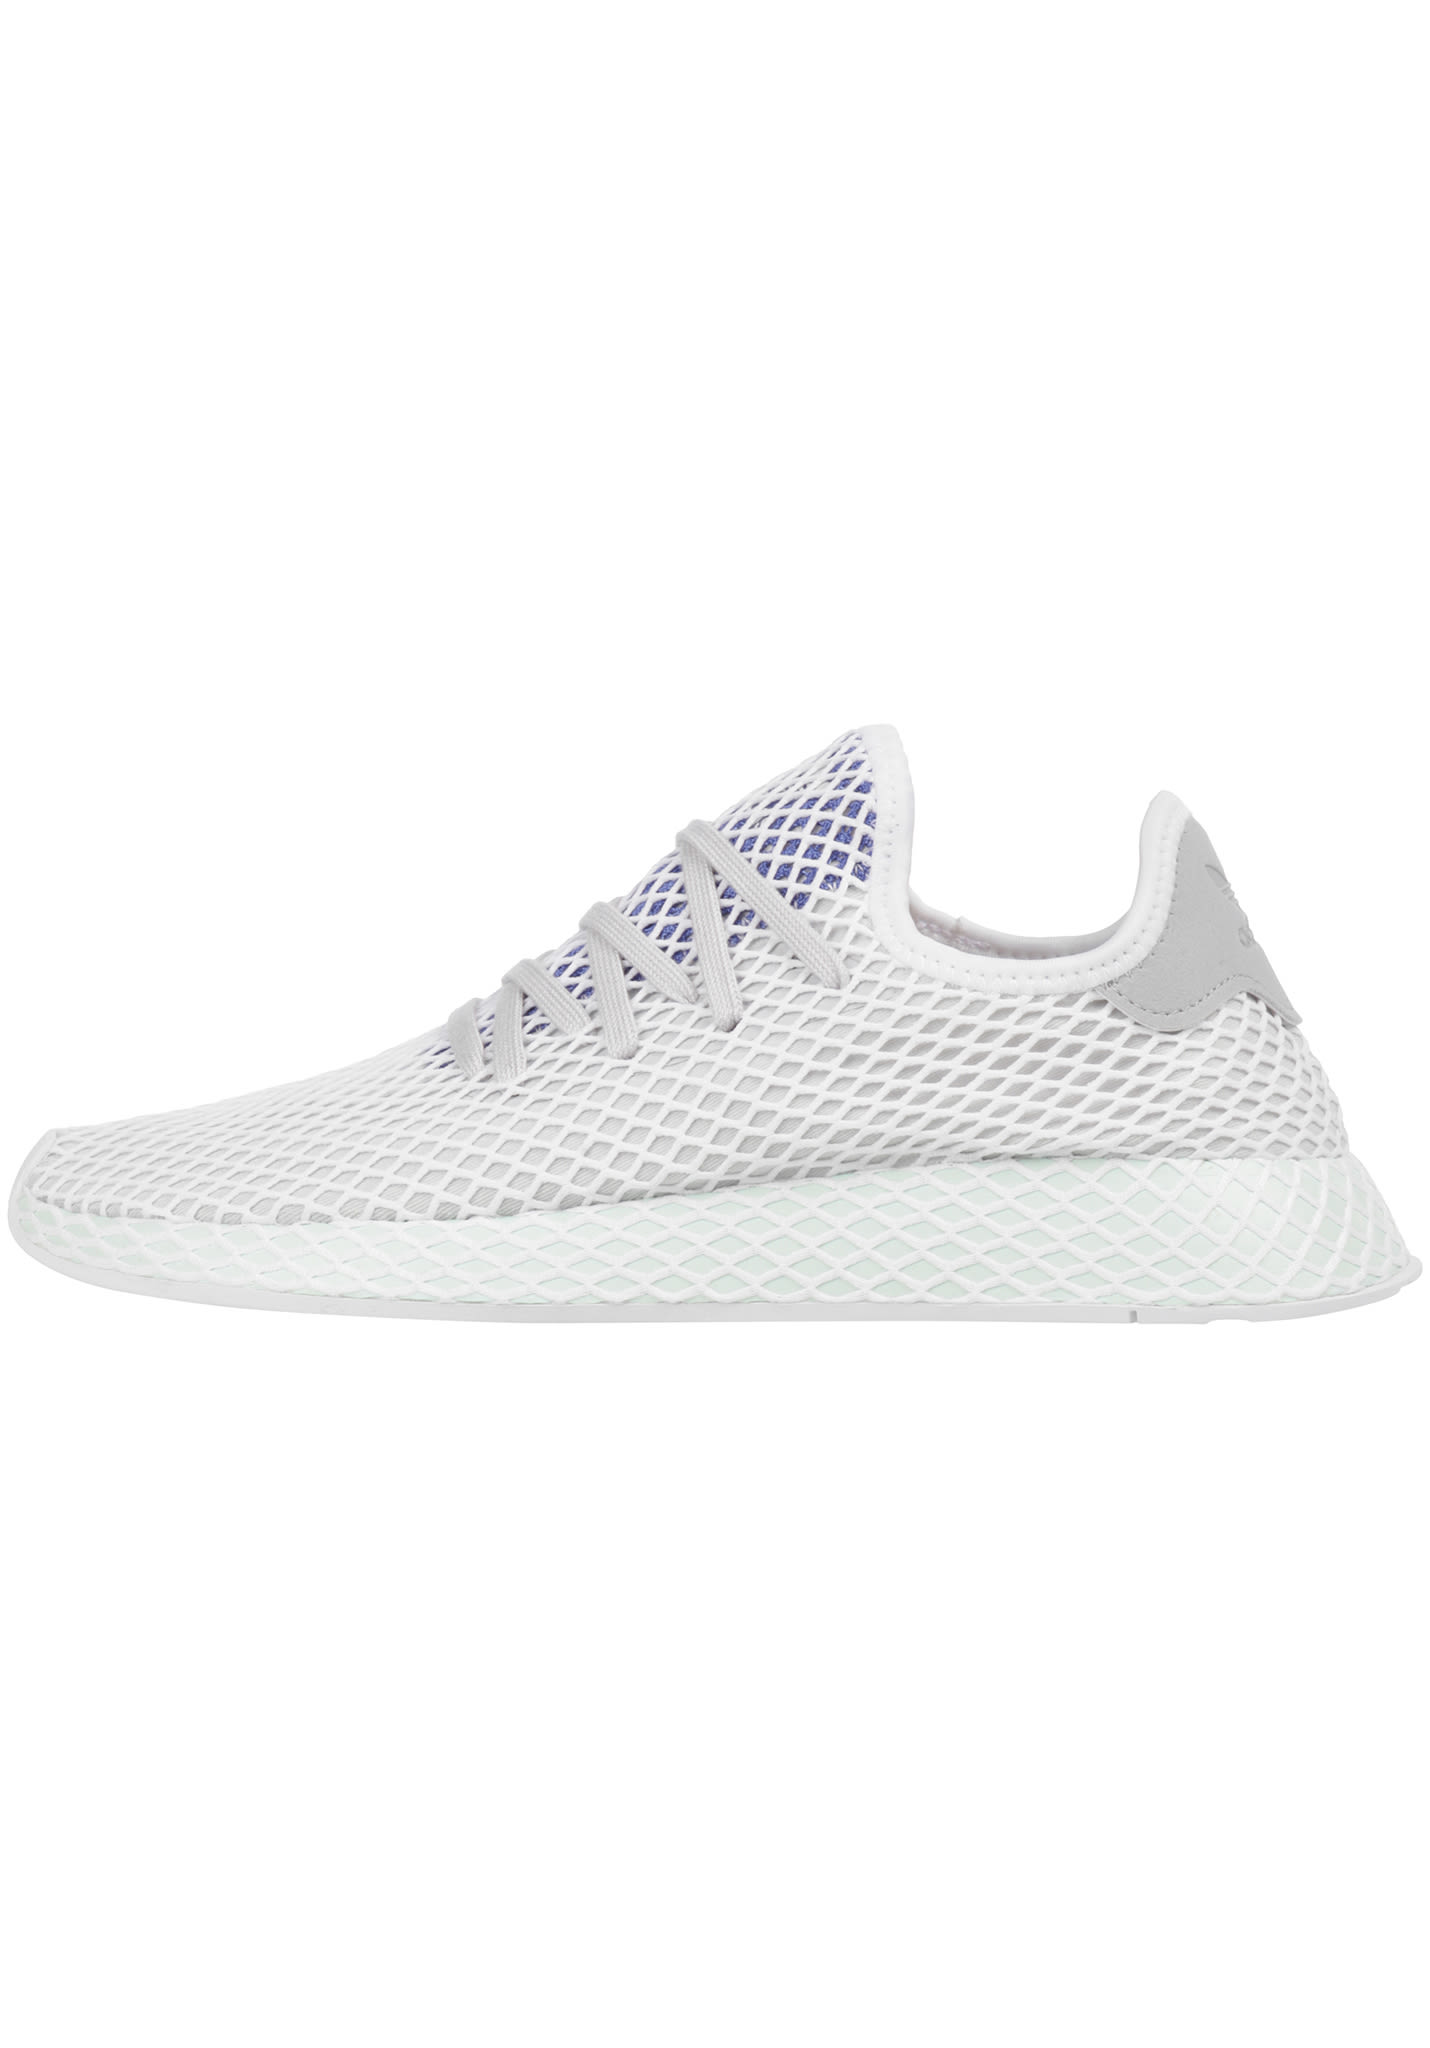 68c98ba7354 ADIDAS ORIGINALS Deerupt Runner - Sneakers - Grijs - Planet Sports